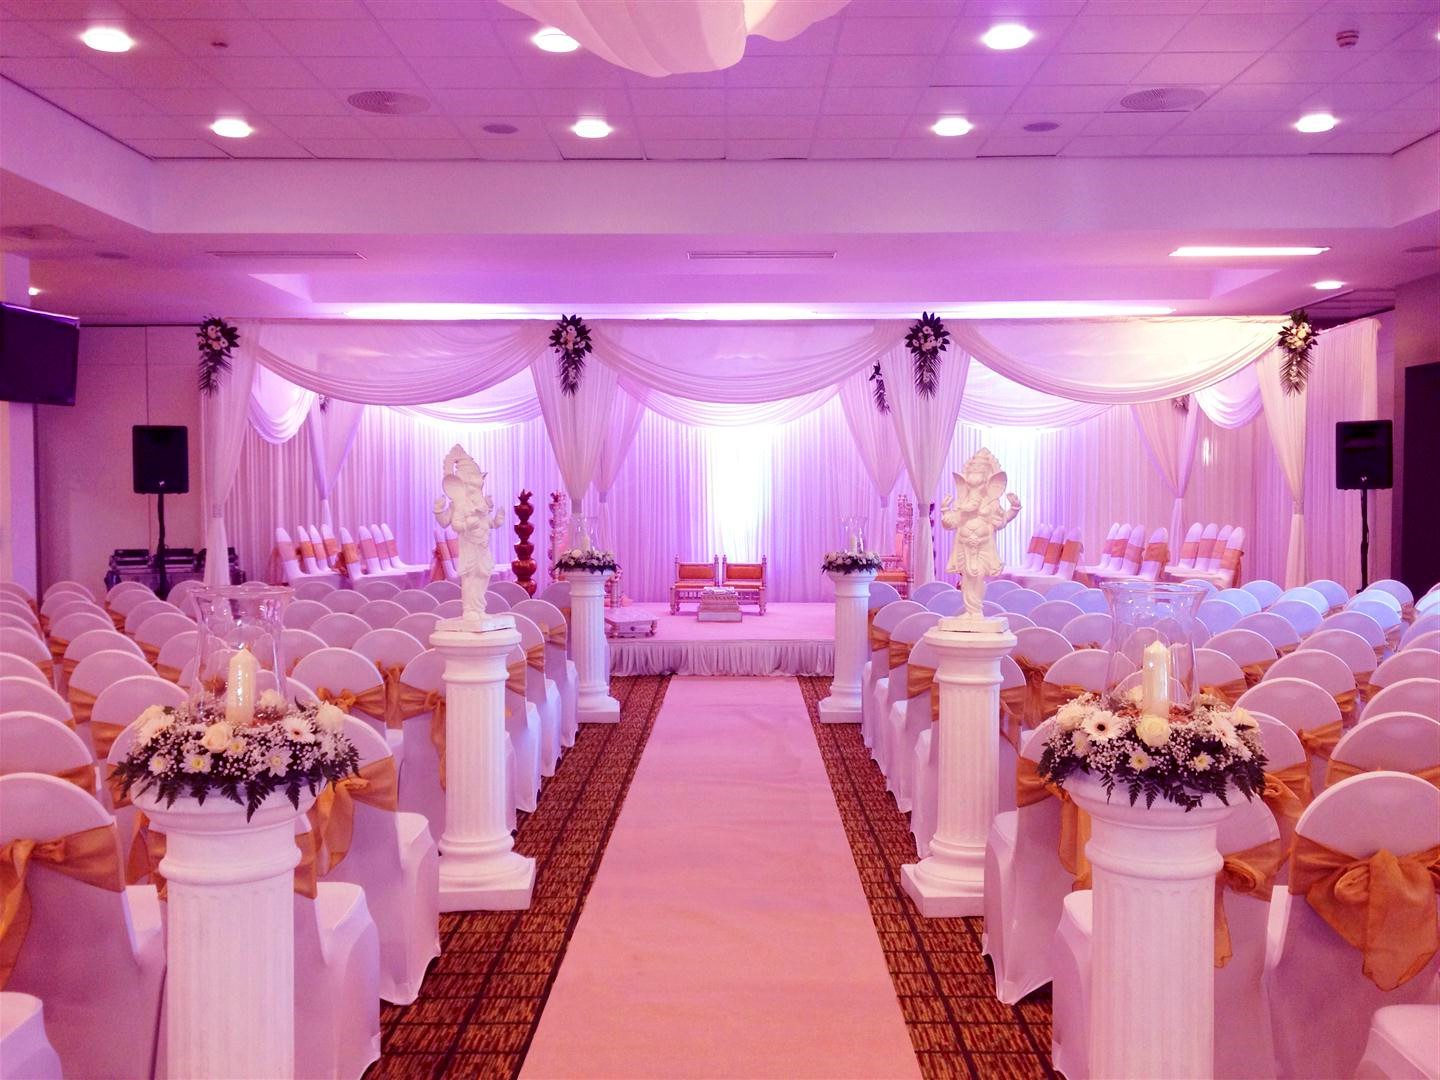 Marvelous purple wedding decoration all about wedding for Decoration 4 wedding